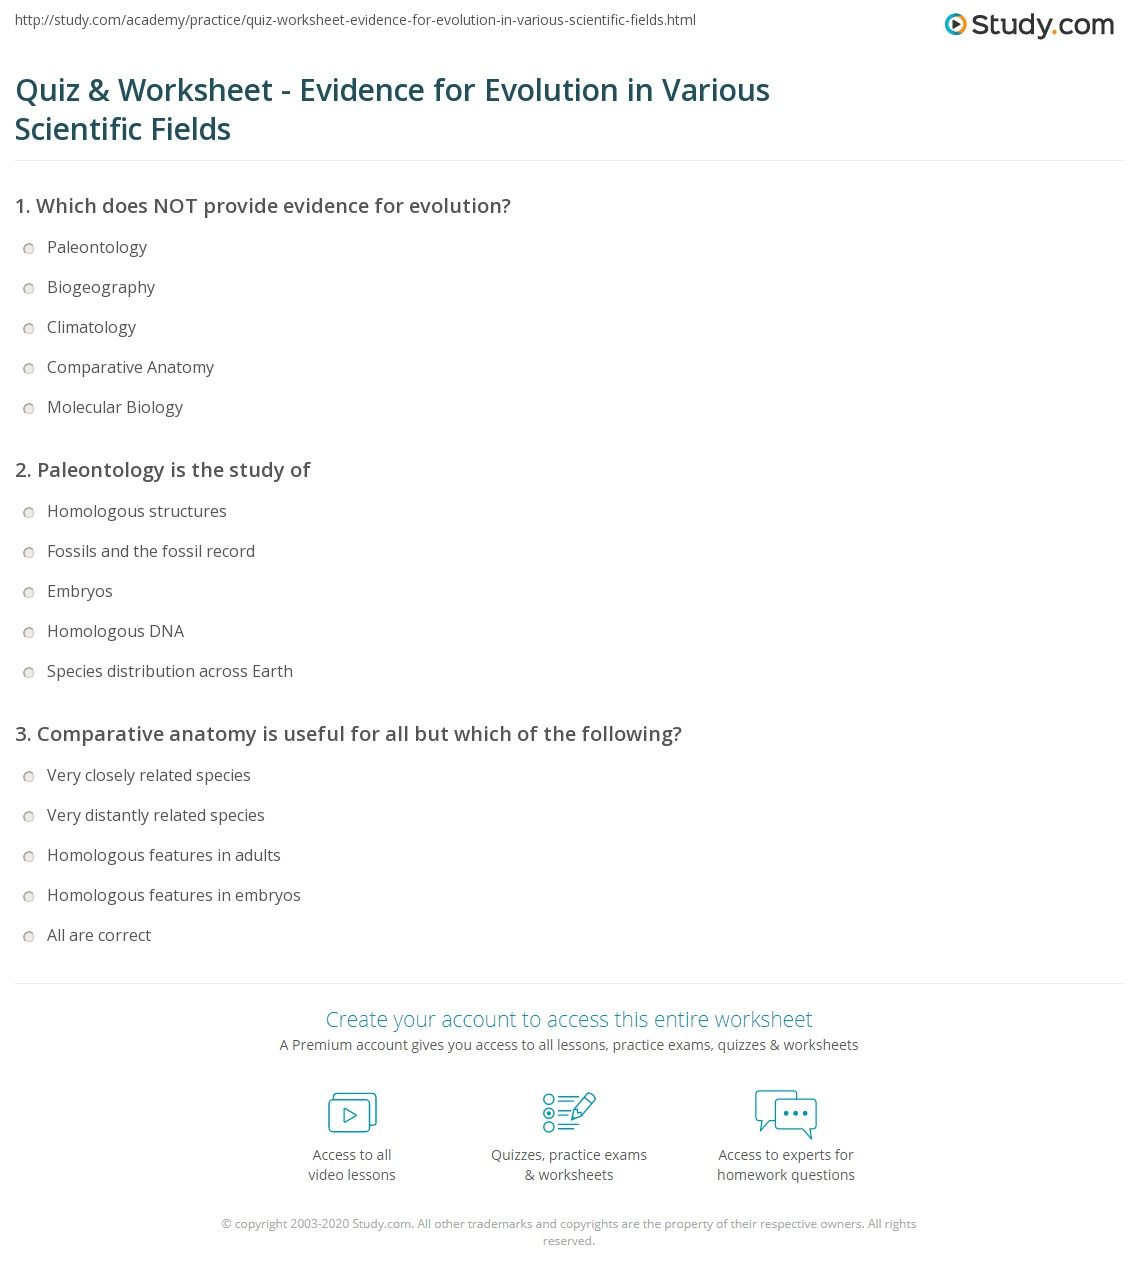 Quiz & Worksheet - Evidence for Evolution in Various Scientific ...